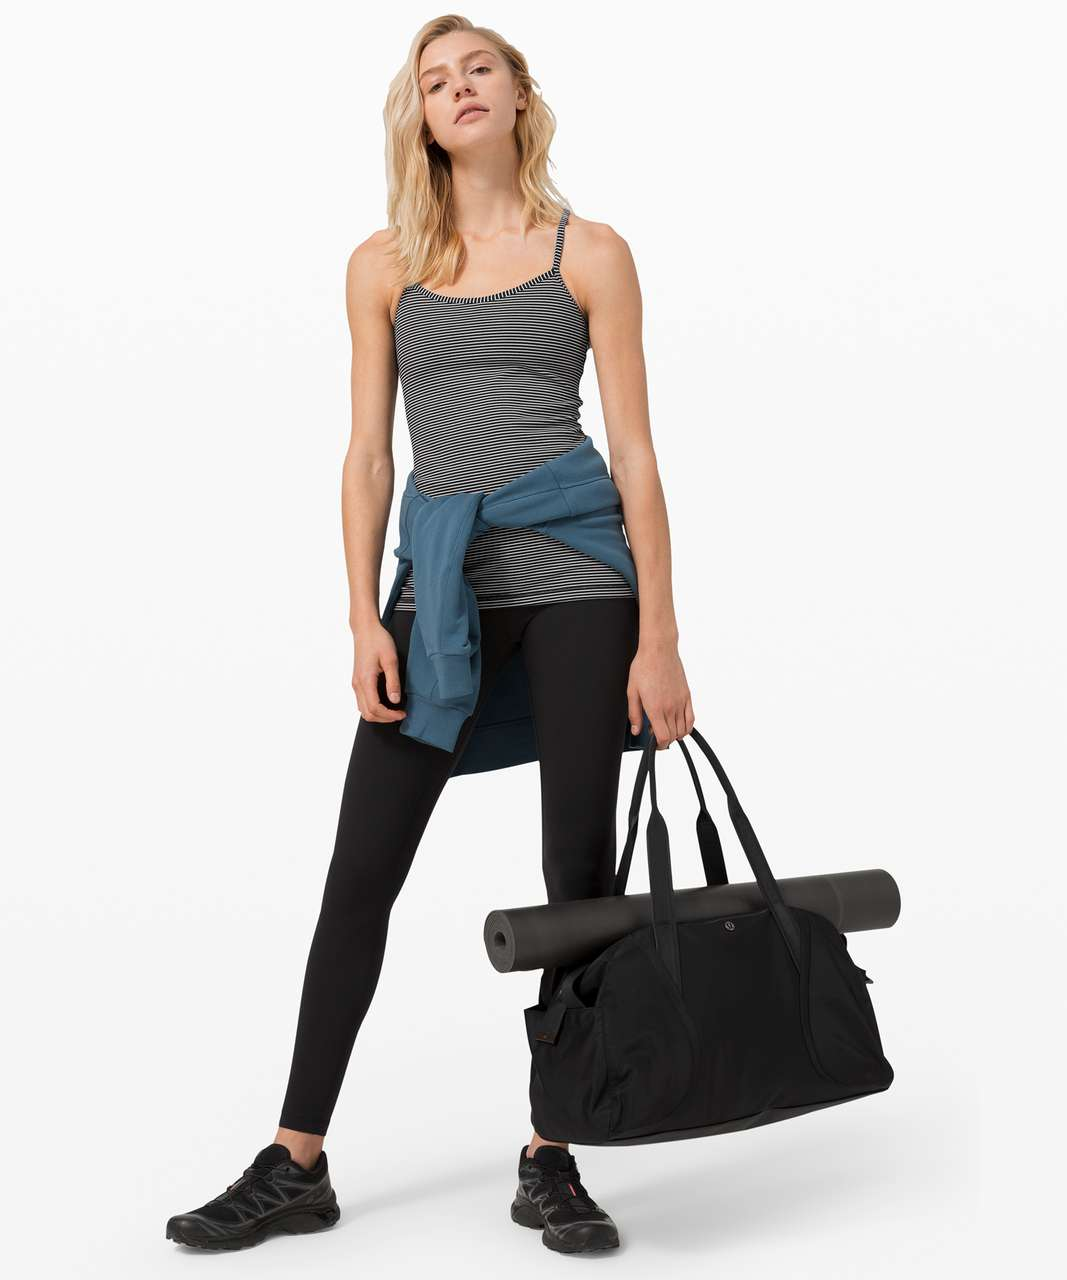 Lululemon Power Y Tank *Luon - Hype Stripe Black White